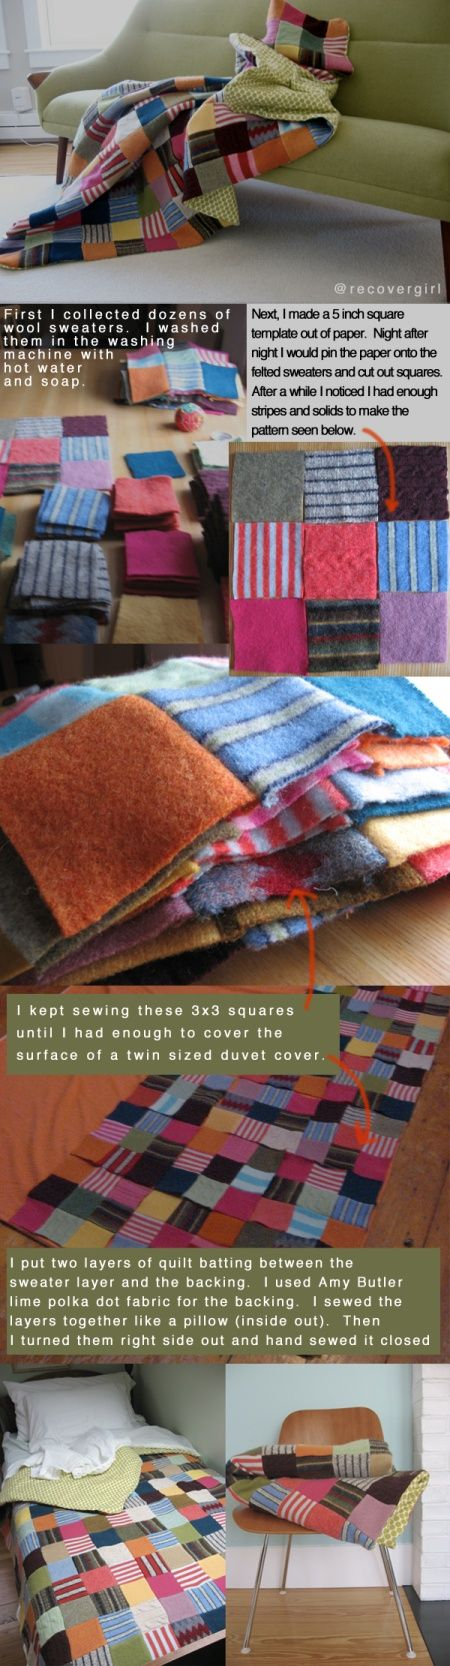 recovergirl-sweater-blanket-how-to - I like this idea, actually. The wool is very warm, and the quilt idea keeps the scratchy bits away from your skin. :)